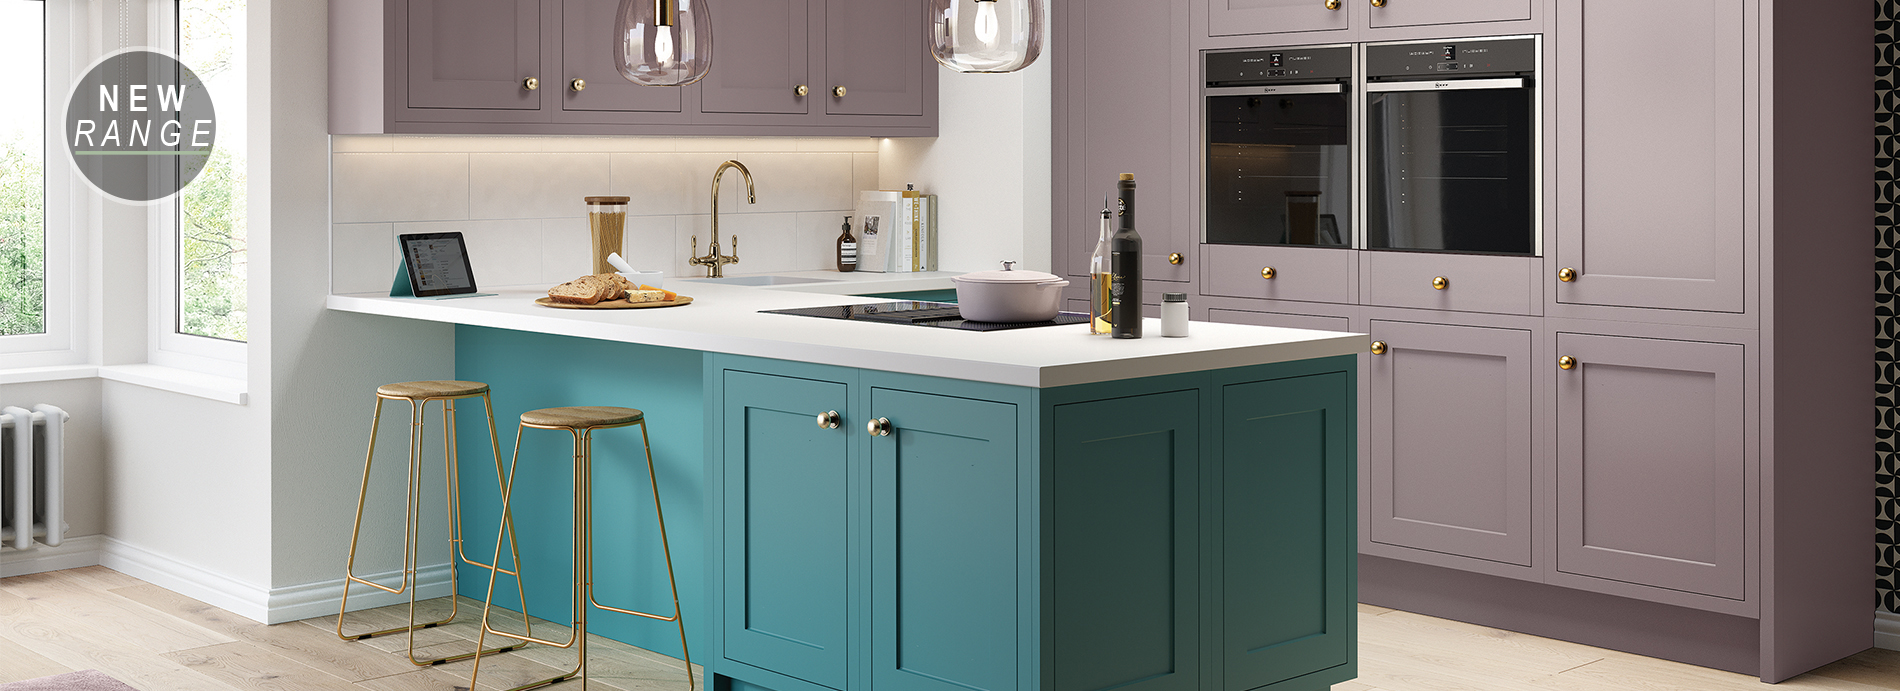 Kitchens in Reigate